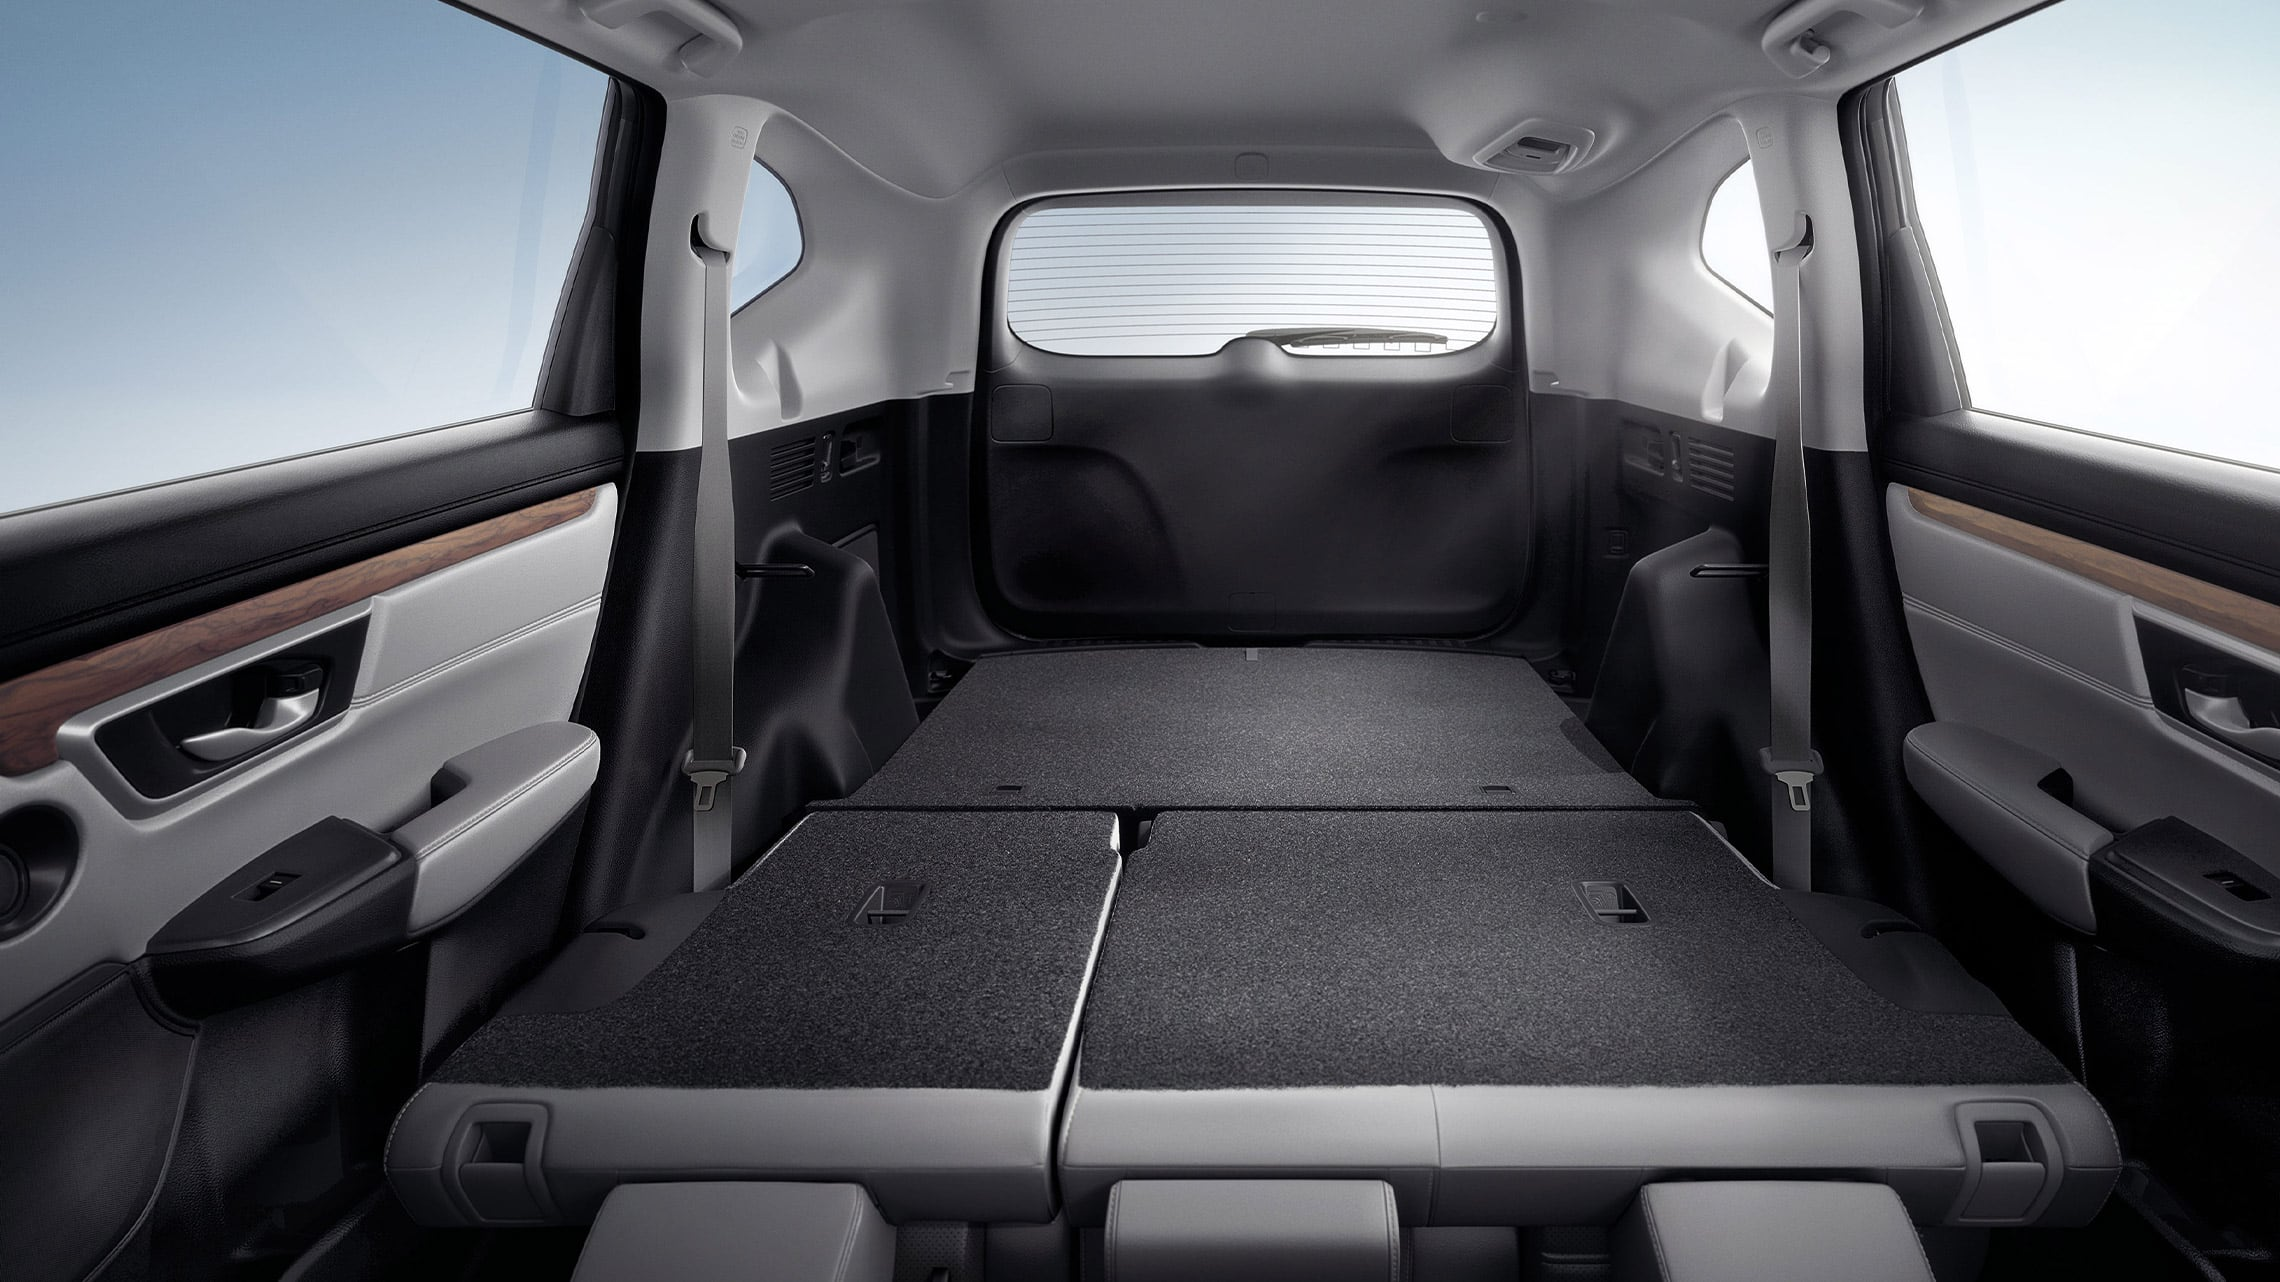 Interior view of 2021 Honda CR-V with Gray Leather demonstrating easy fold-down 60/40 split rear seatback.